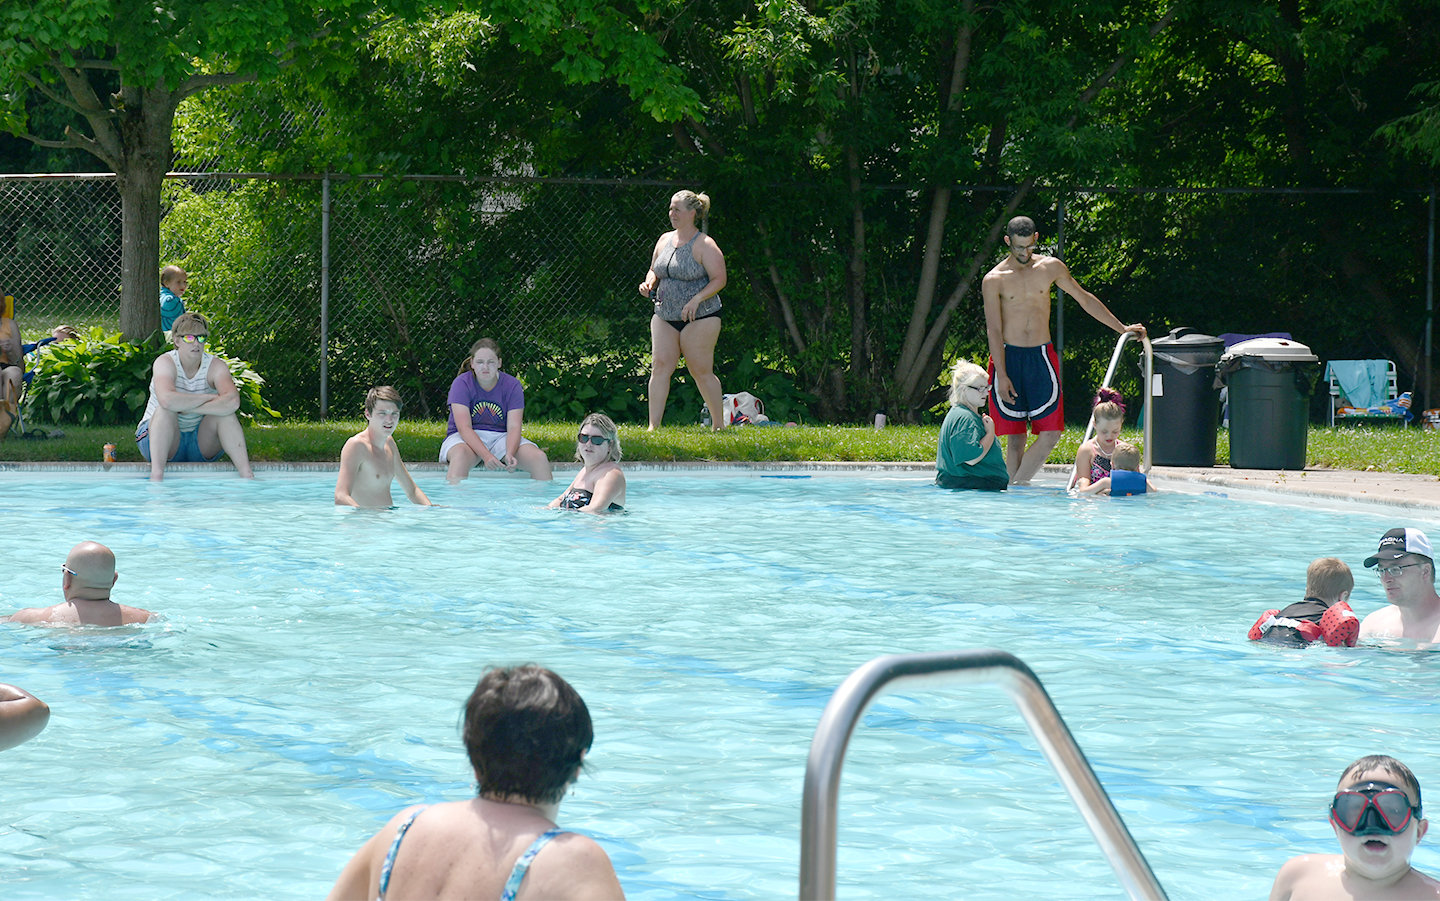 ENJOYING THE WATER — The Clinton Youth Foundation board members and Clinton Pool staff opened the Jack Boynton Community Pool on Sunday, July 5. Pictured here are members of the community enjoying the pool on a warm summer day.